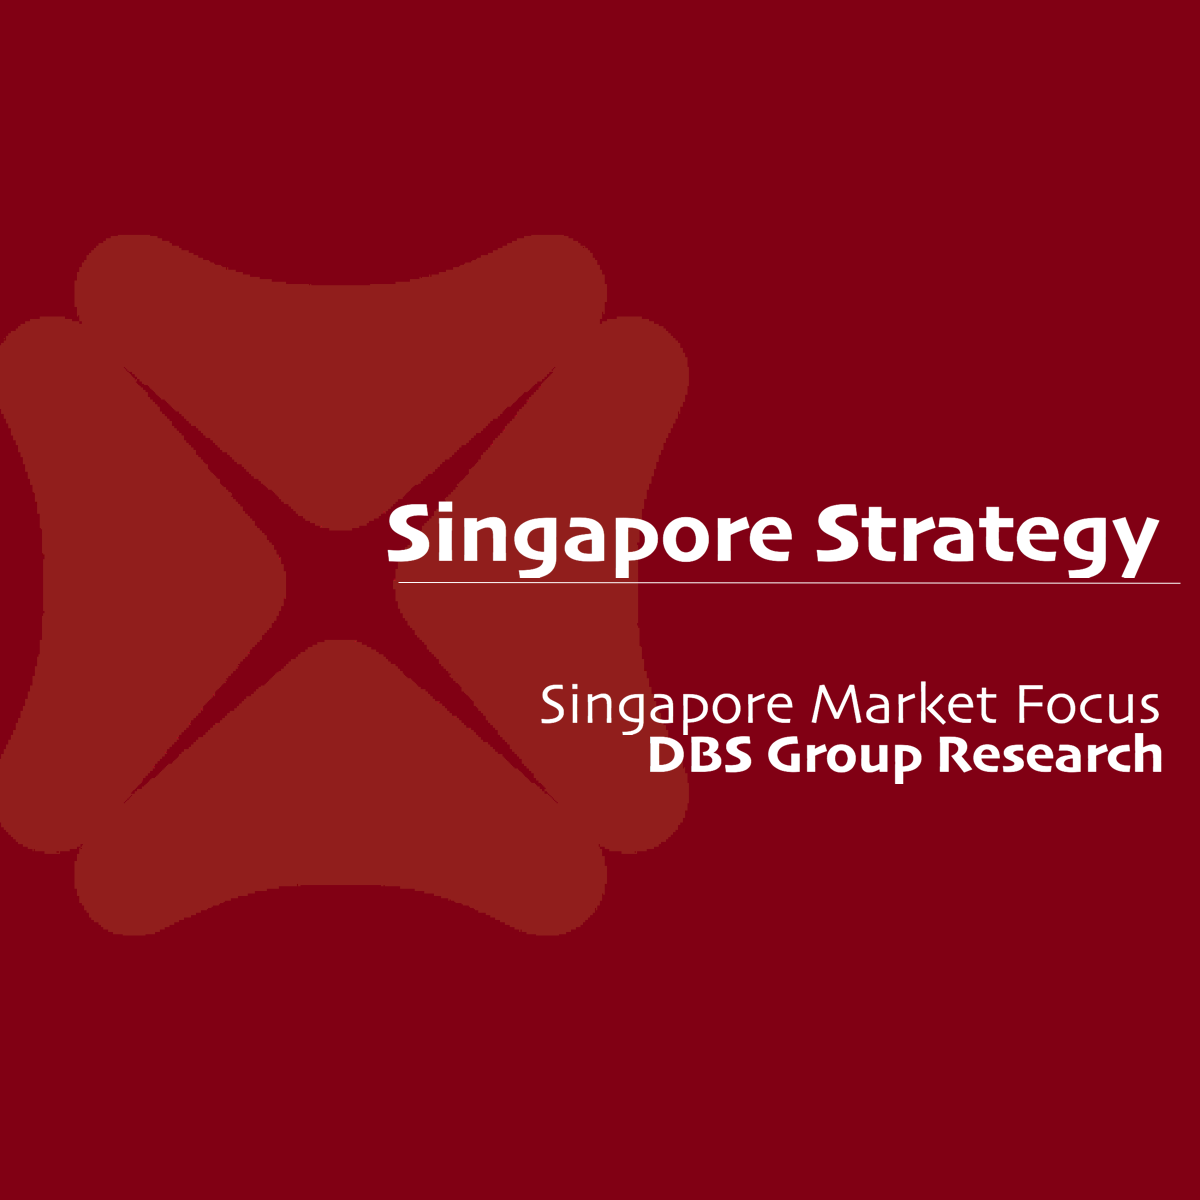 Singapore Market Focus - DBS Vickers 2017-04-10: Strike One And Out